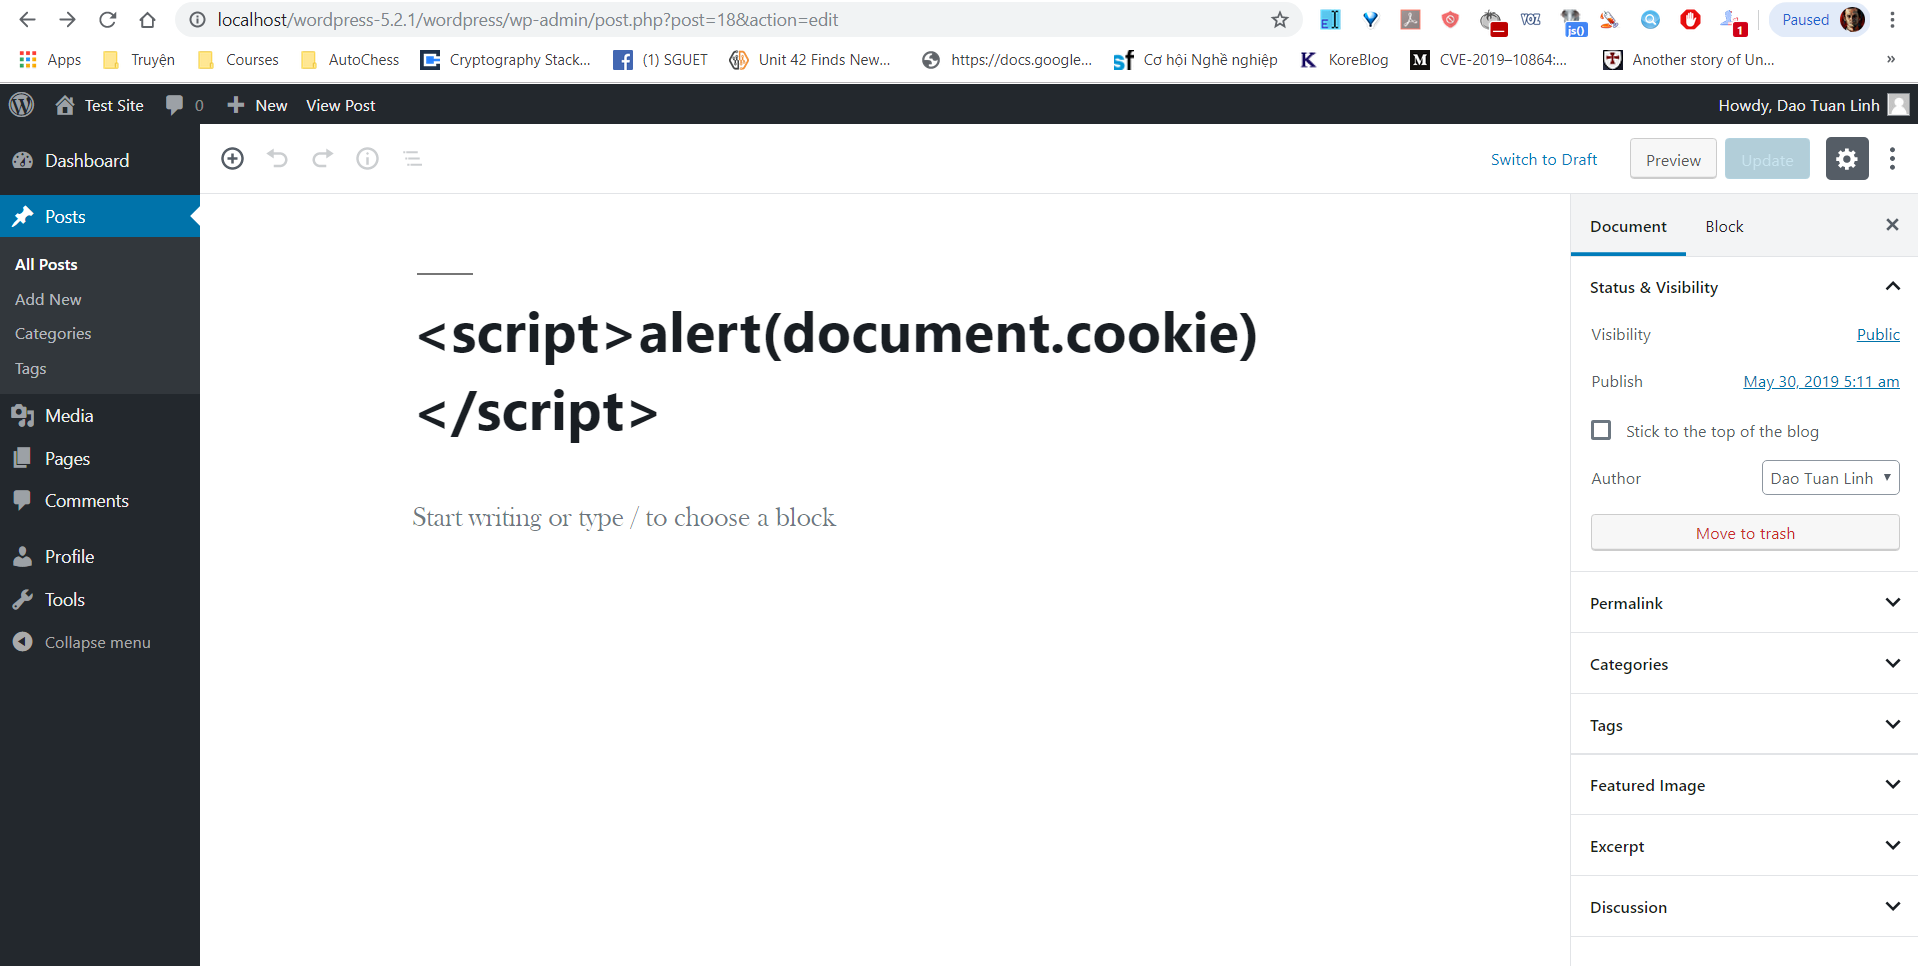 Page's title should be encoded or filtering html entities/javascript